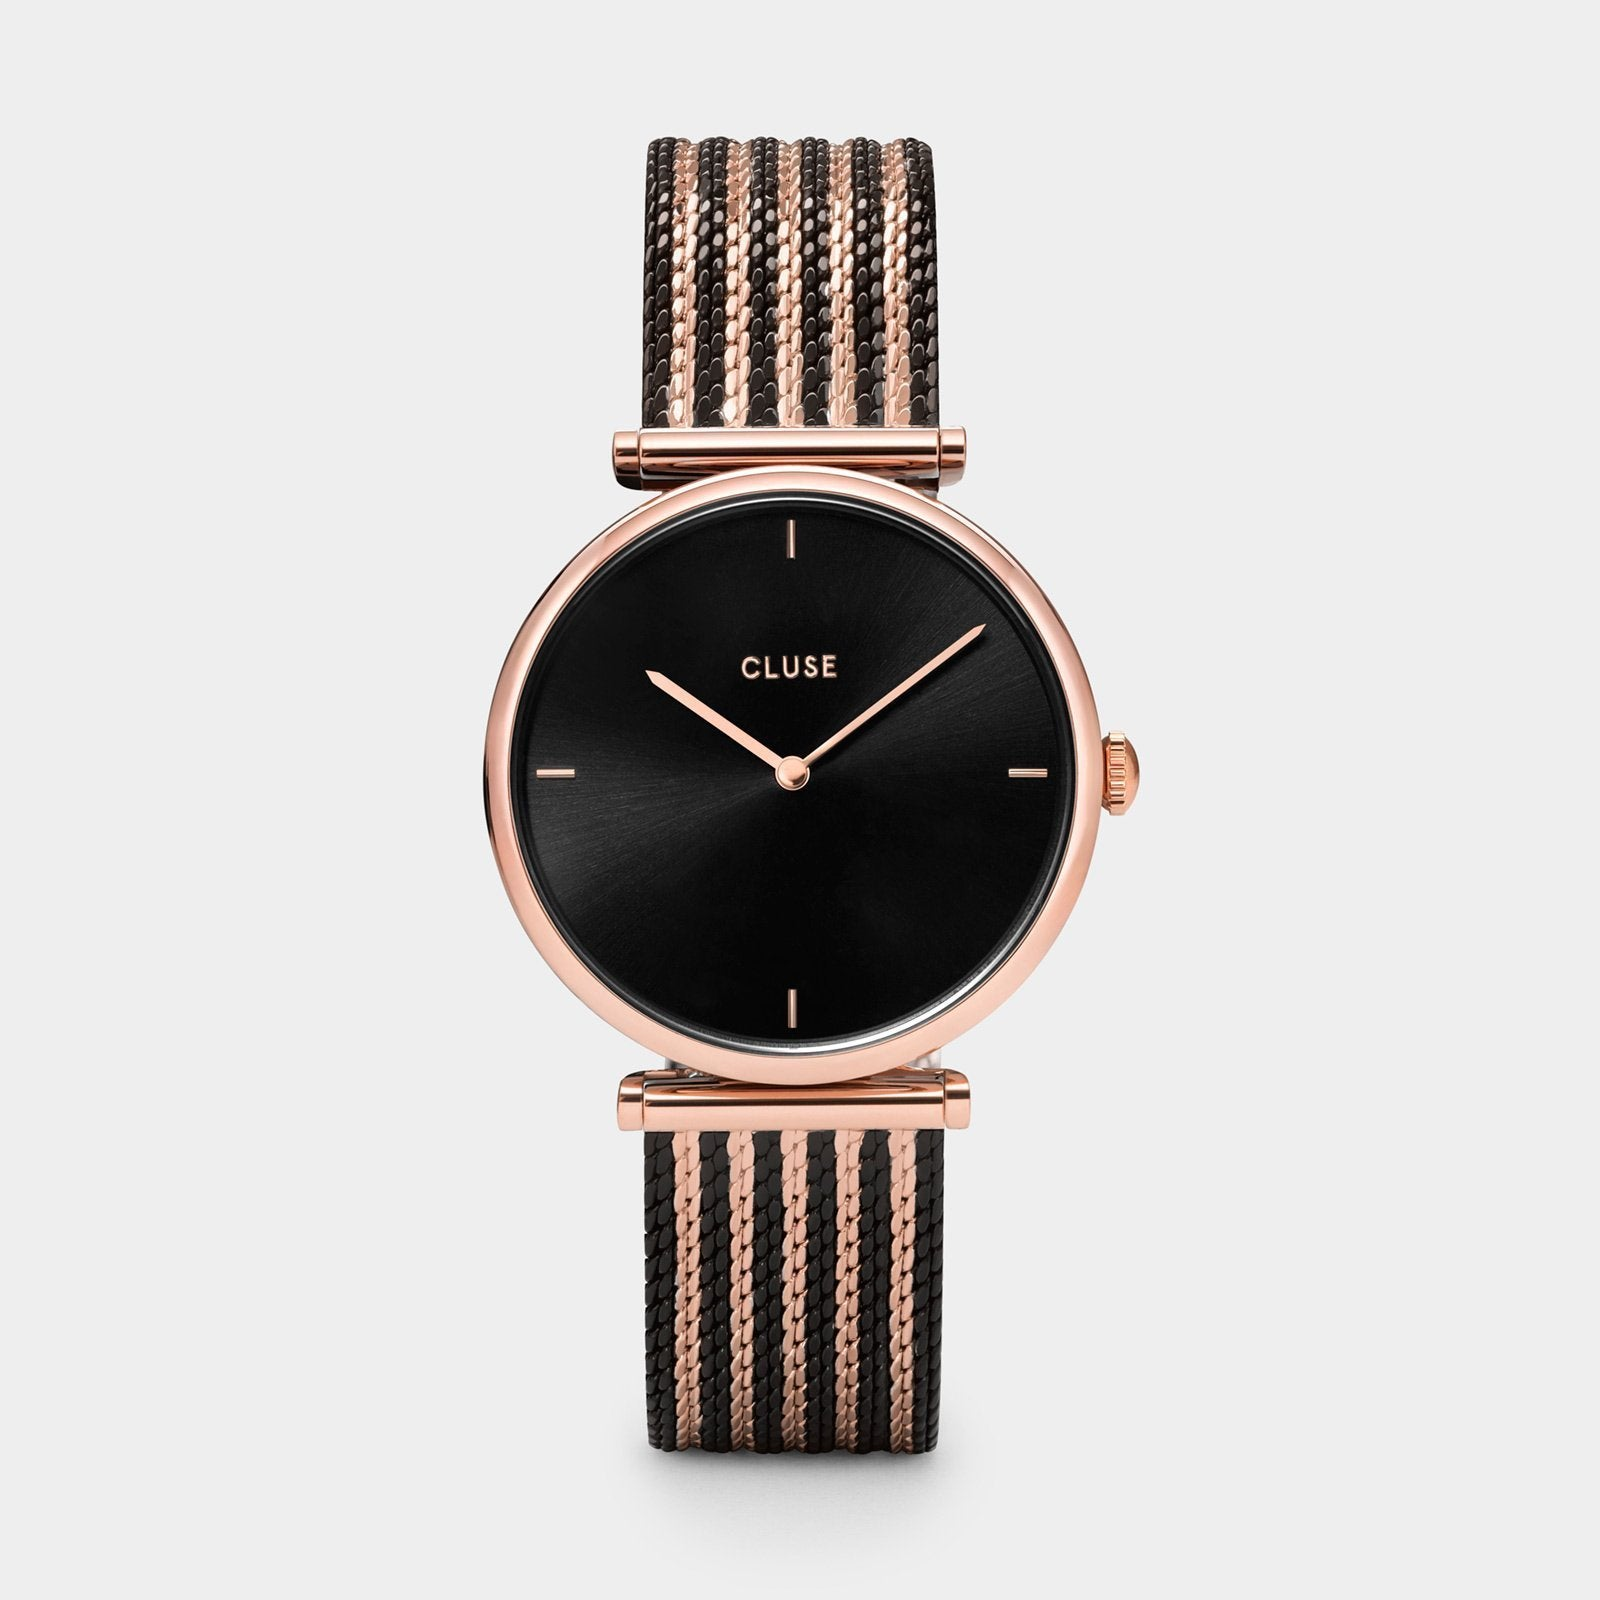 CLUSE Triomphe Mesh Rose Gold Black/Black/Rose gold CW0101208005 - Reloj